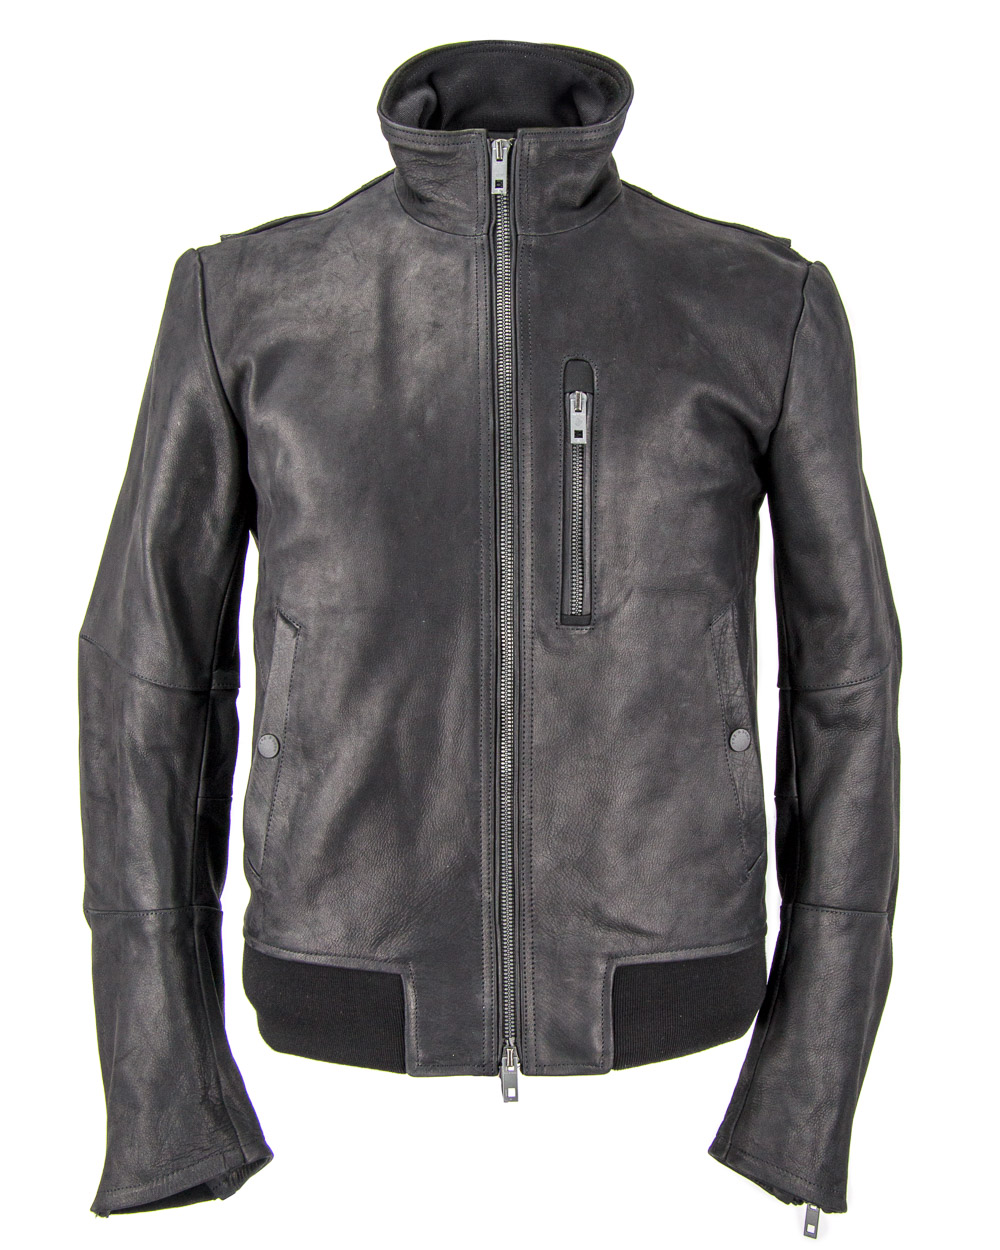 rahul's photos in Leather Jackets:  Post Pictures of the Best You've Seen/Owned?